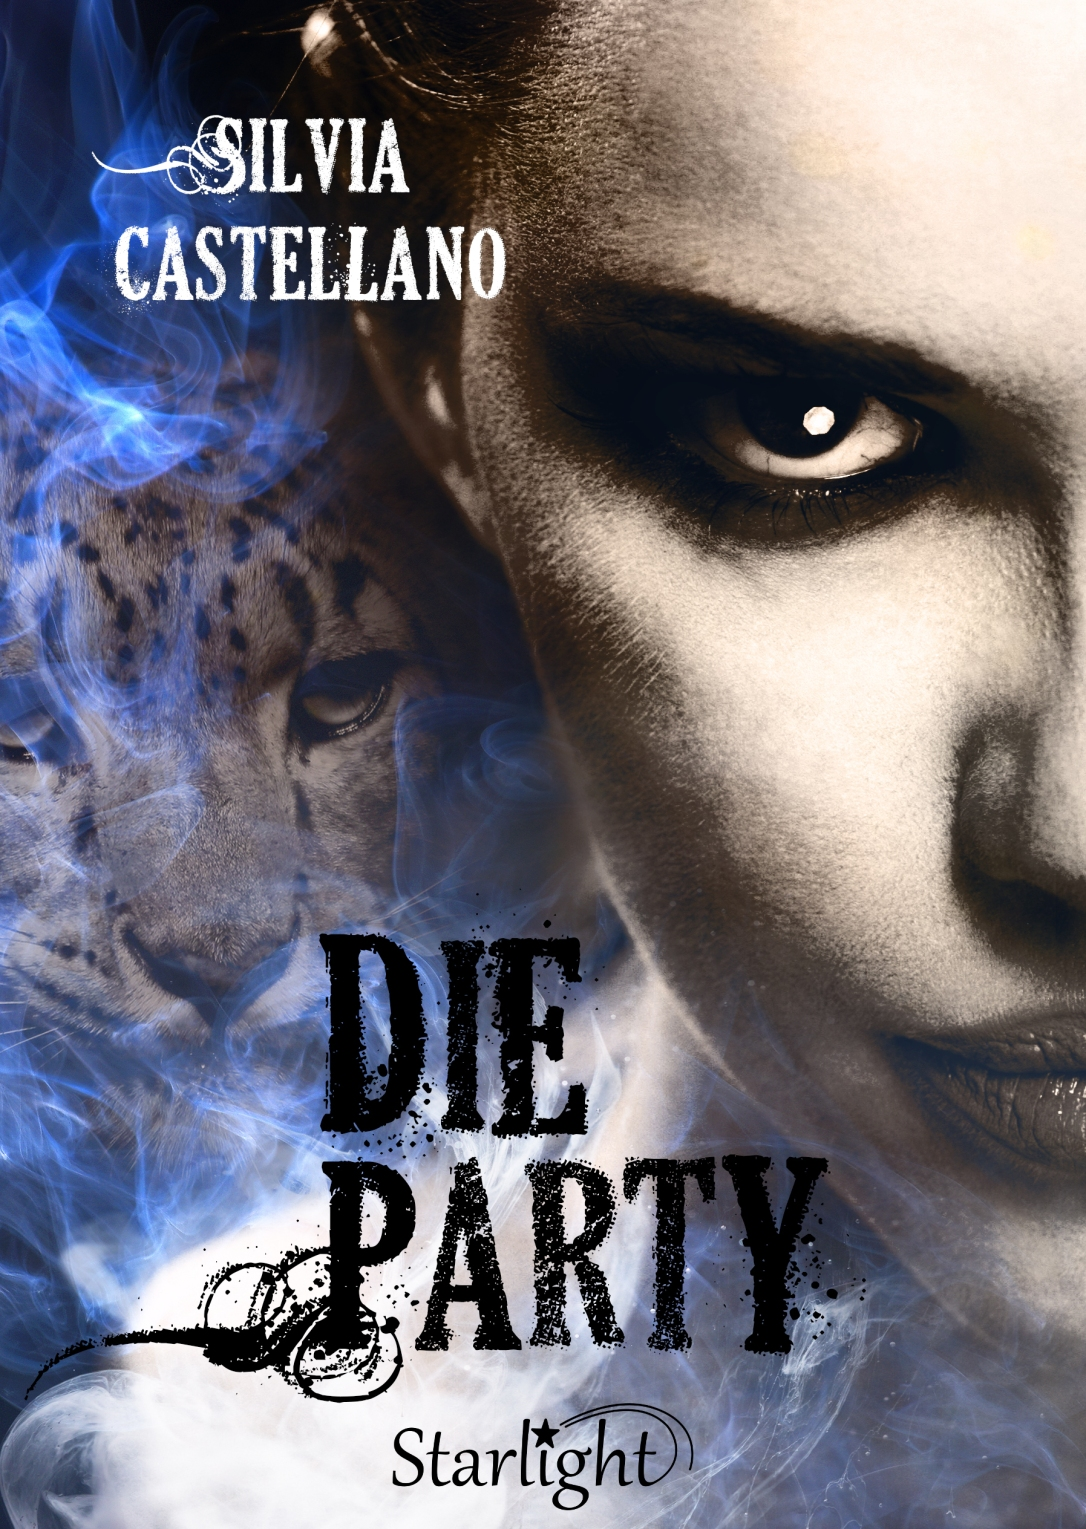 Copertina_Die Party